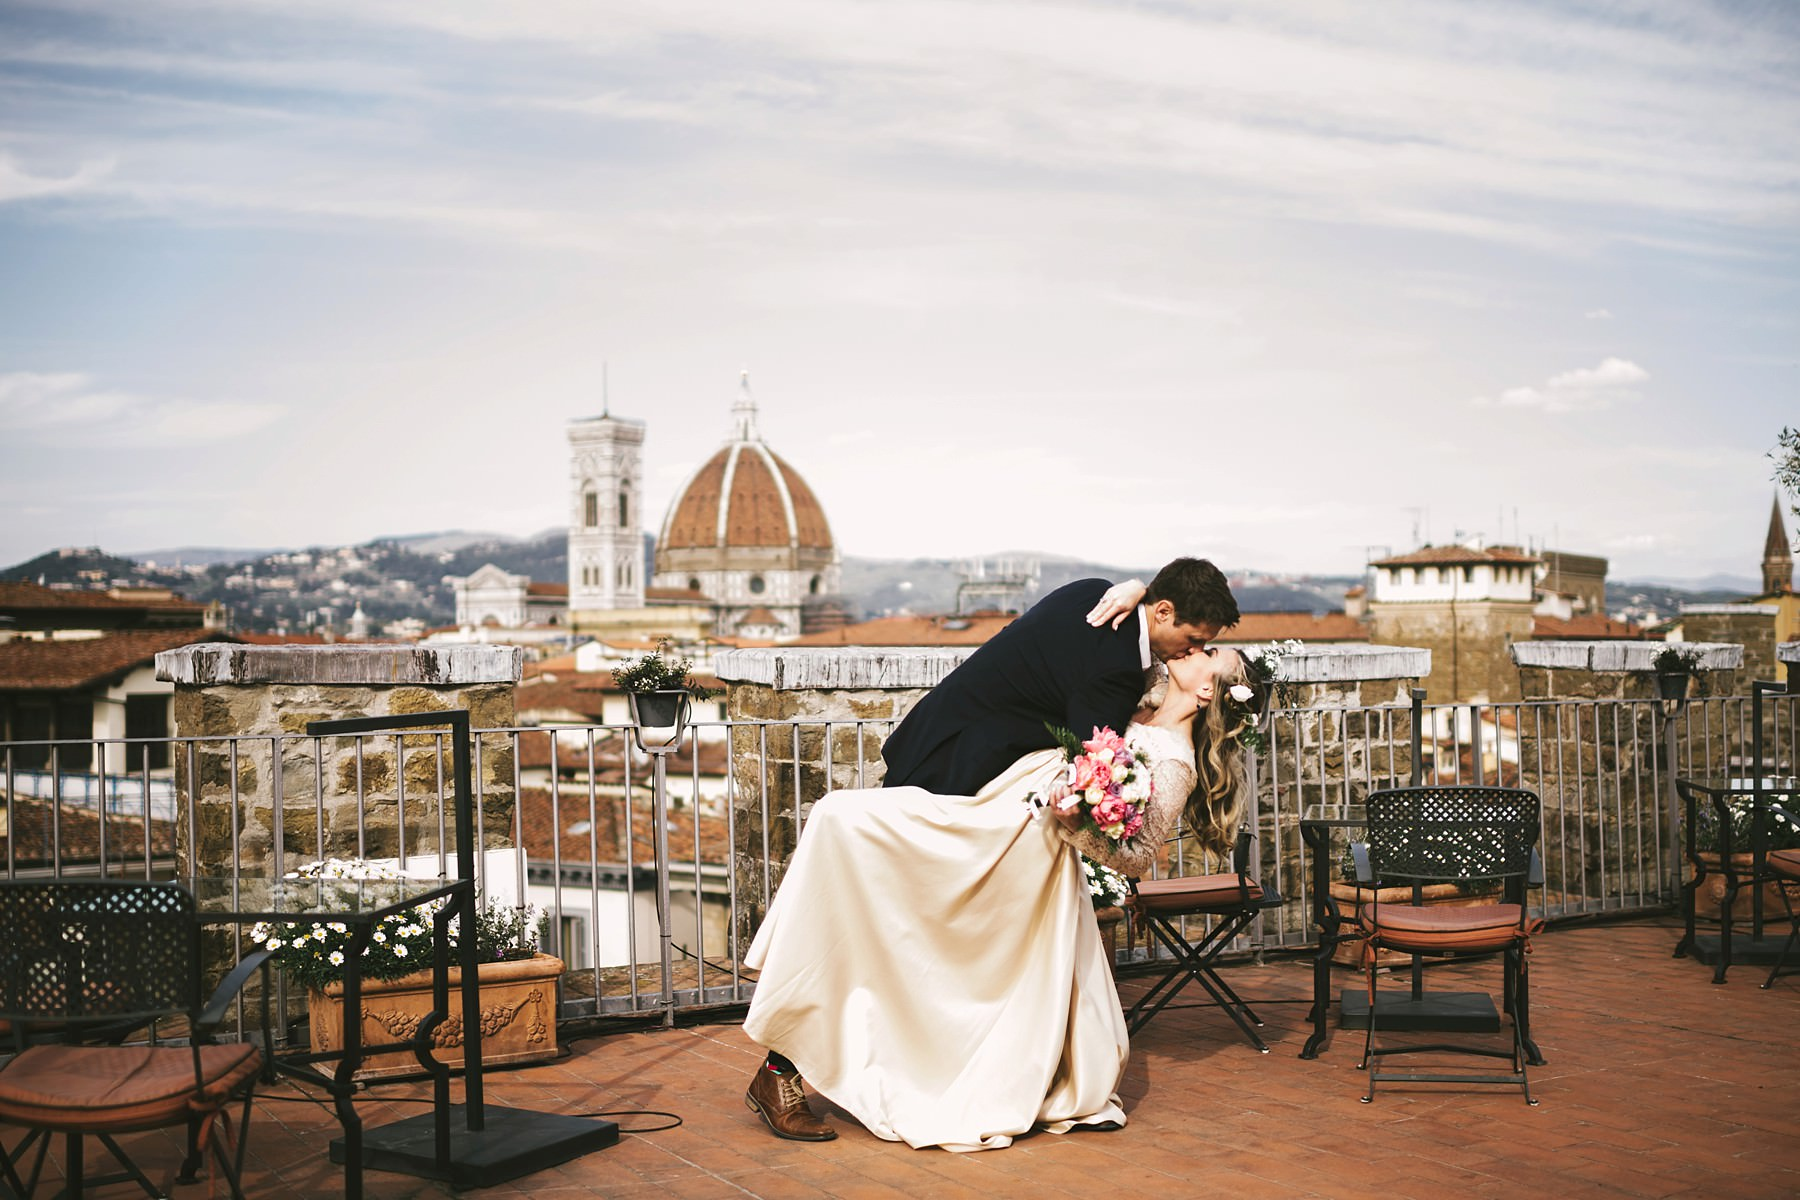 Florence couple portrait photo shoot with vows renewal ceremony event at Antica Torre Tornabuoni top terrace